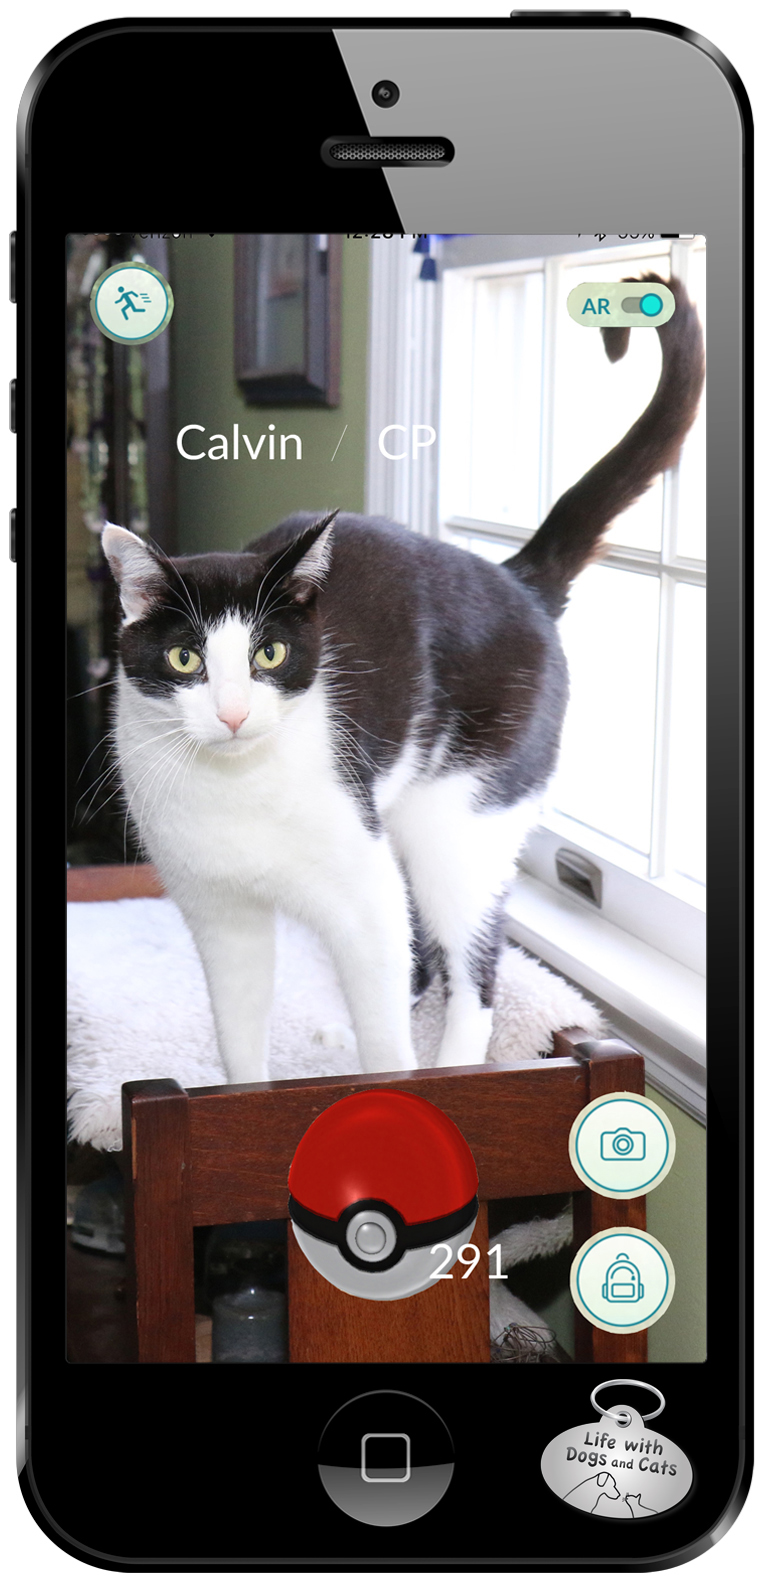 Pokemon are really cats. Caught one, a Calvin.